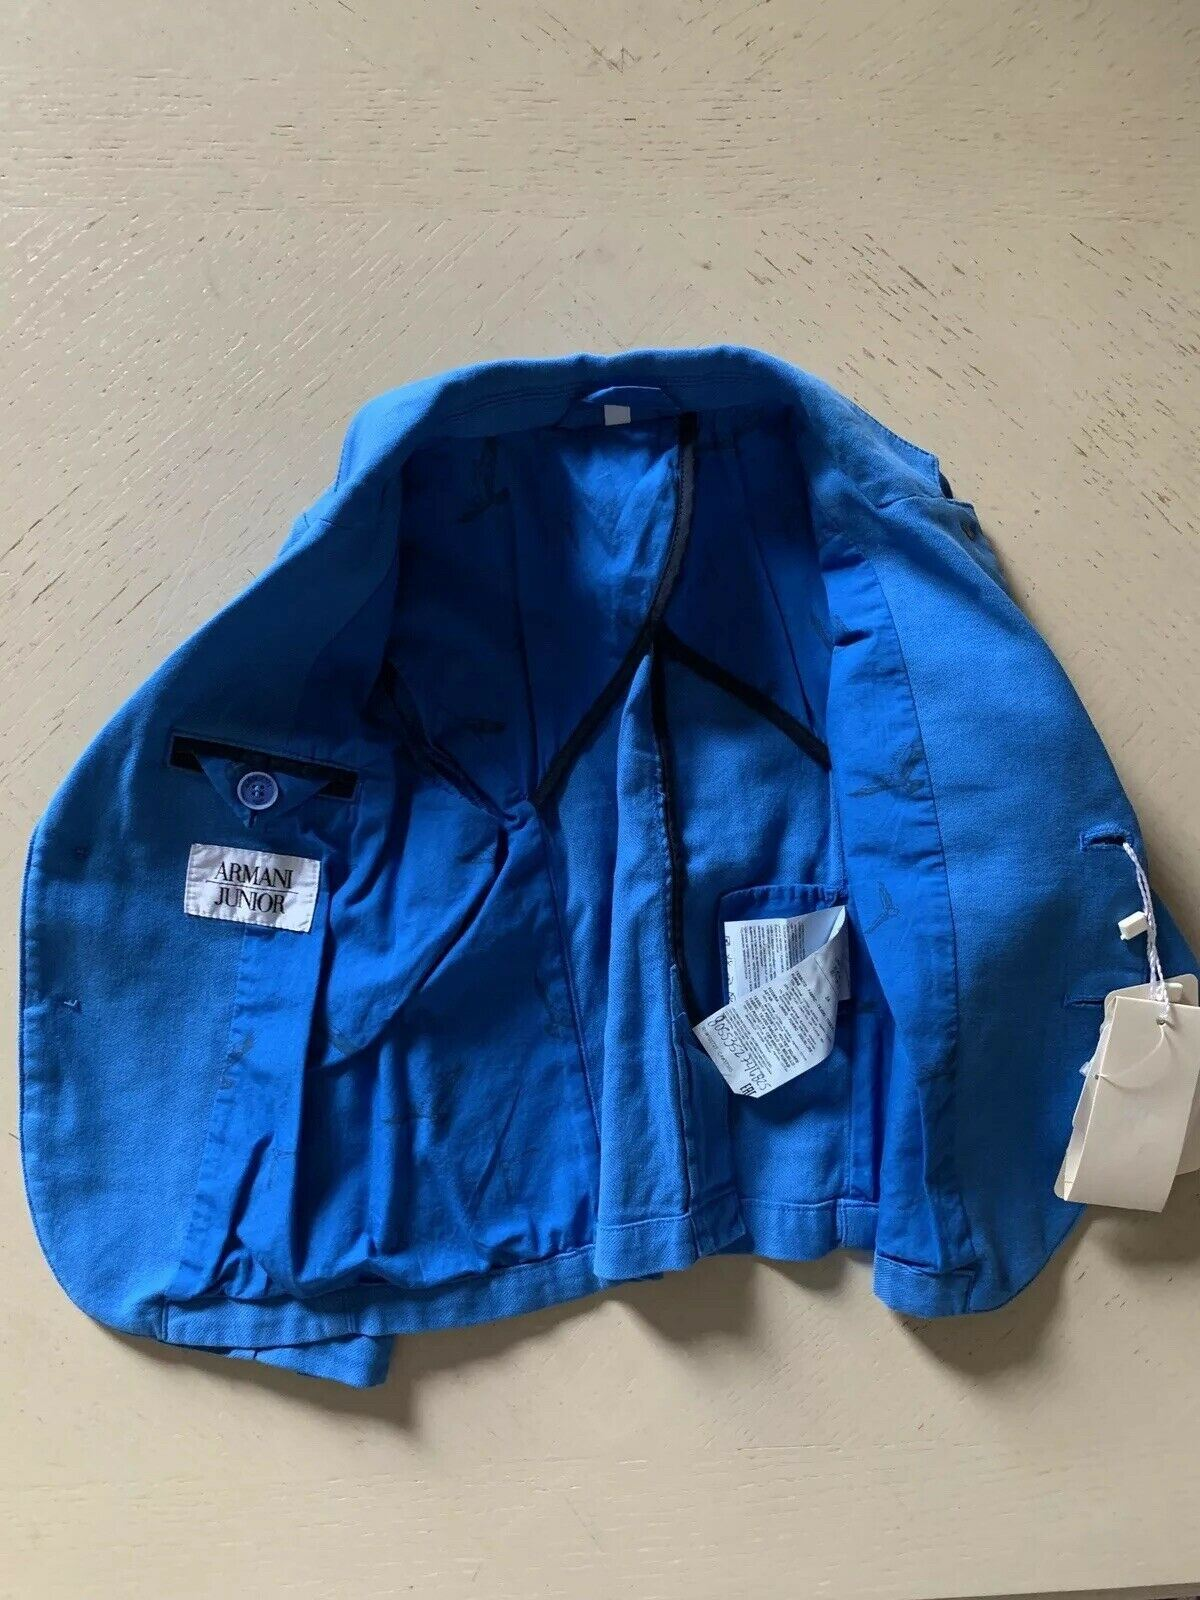 New $360 Armani Junior Boys Jacket Blazer Blue 2Y